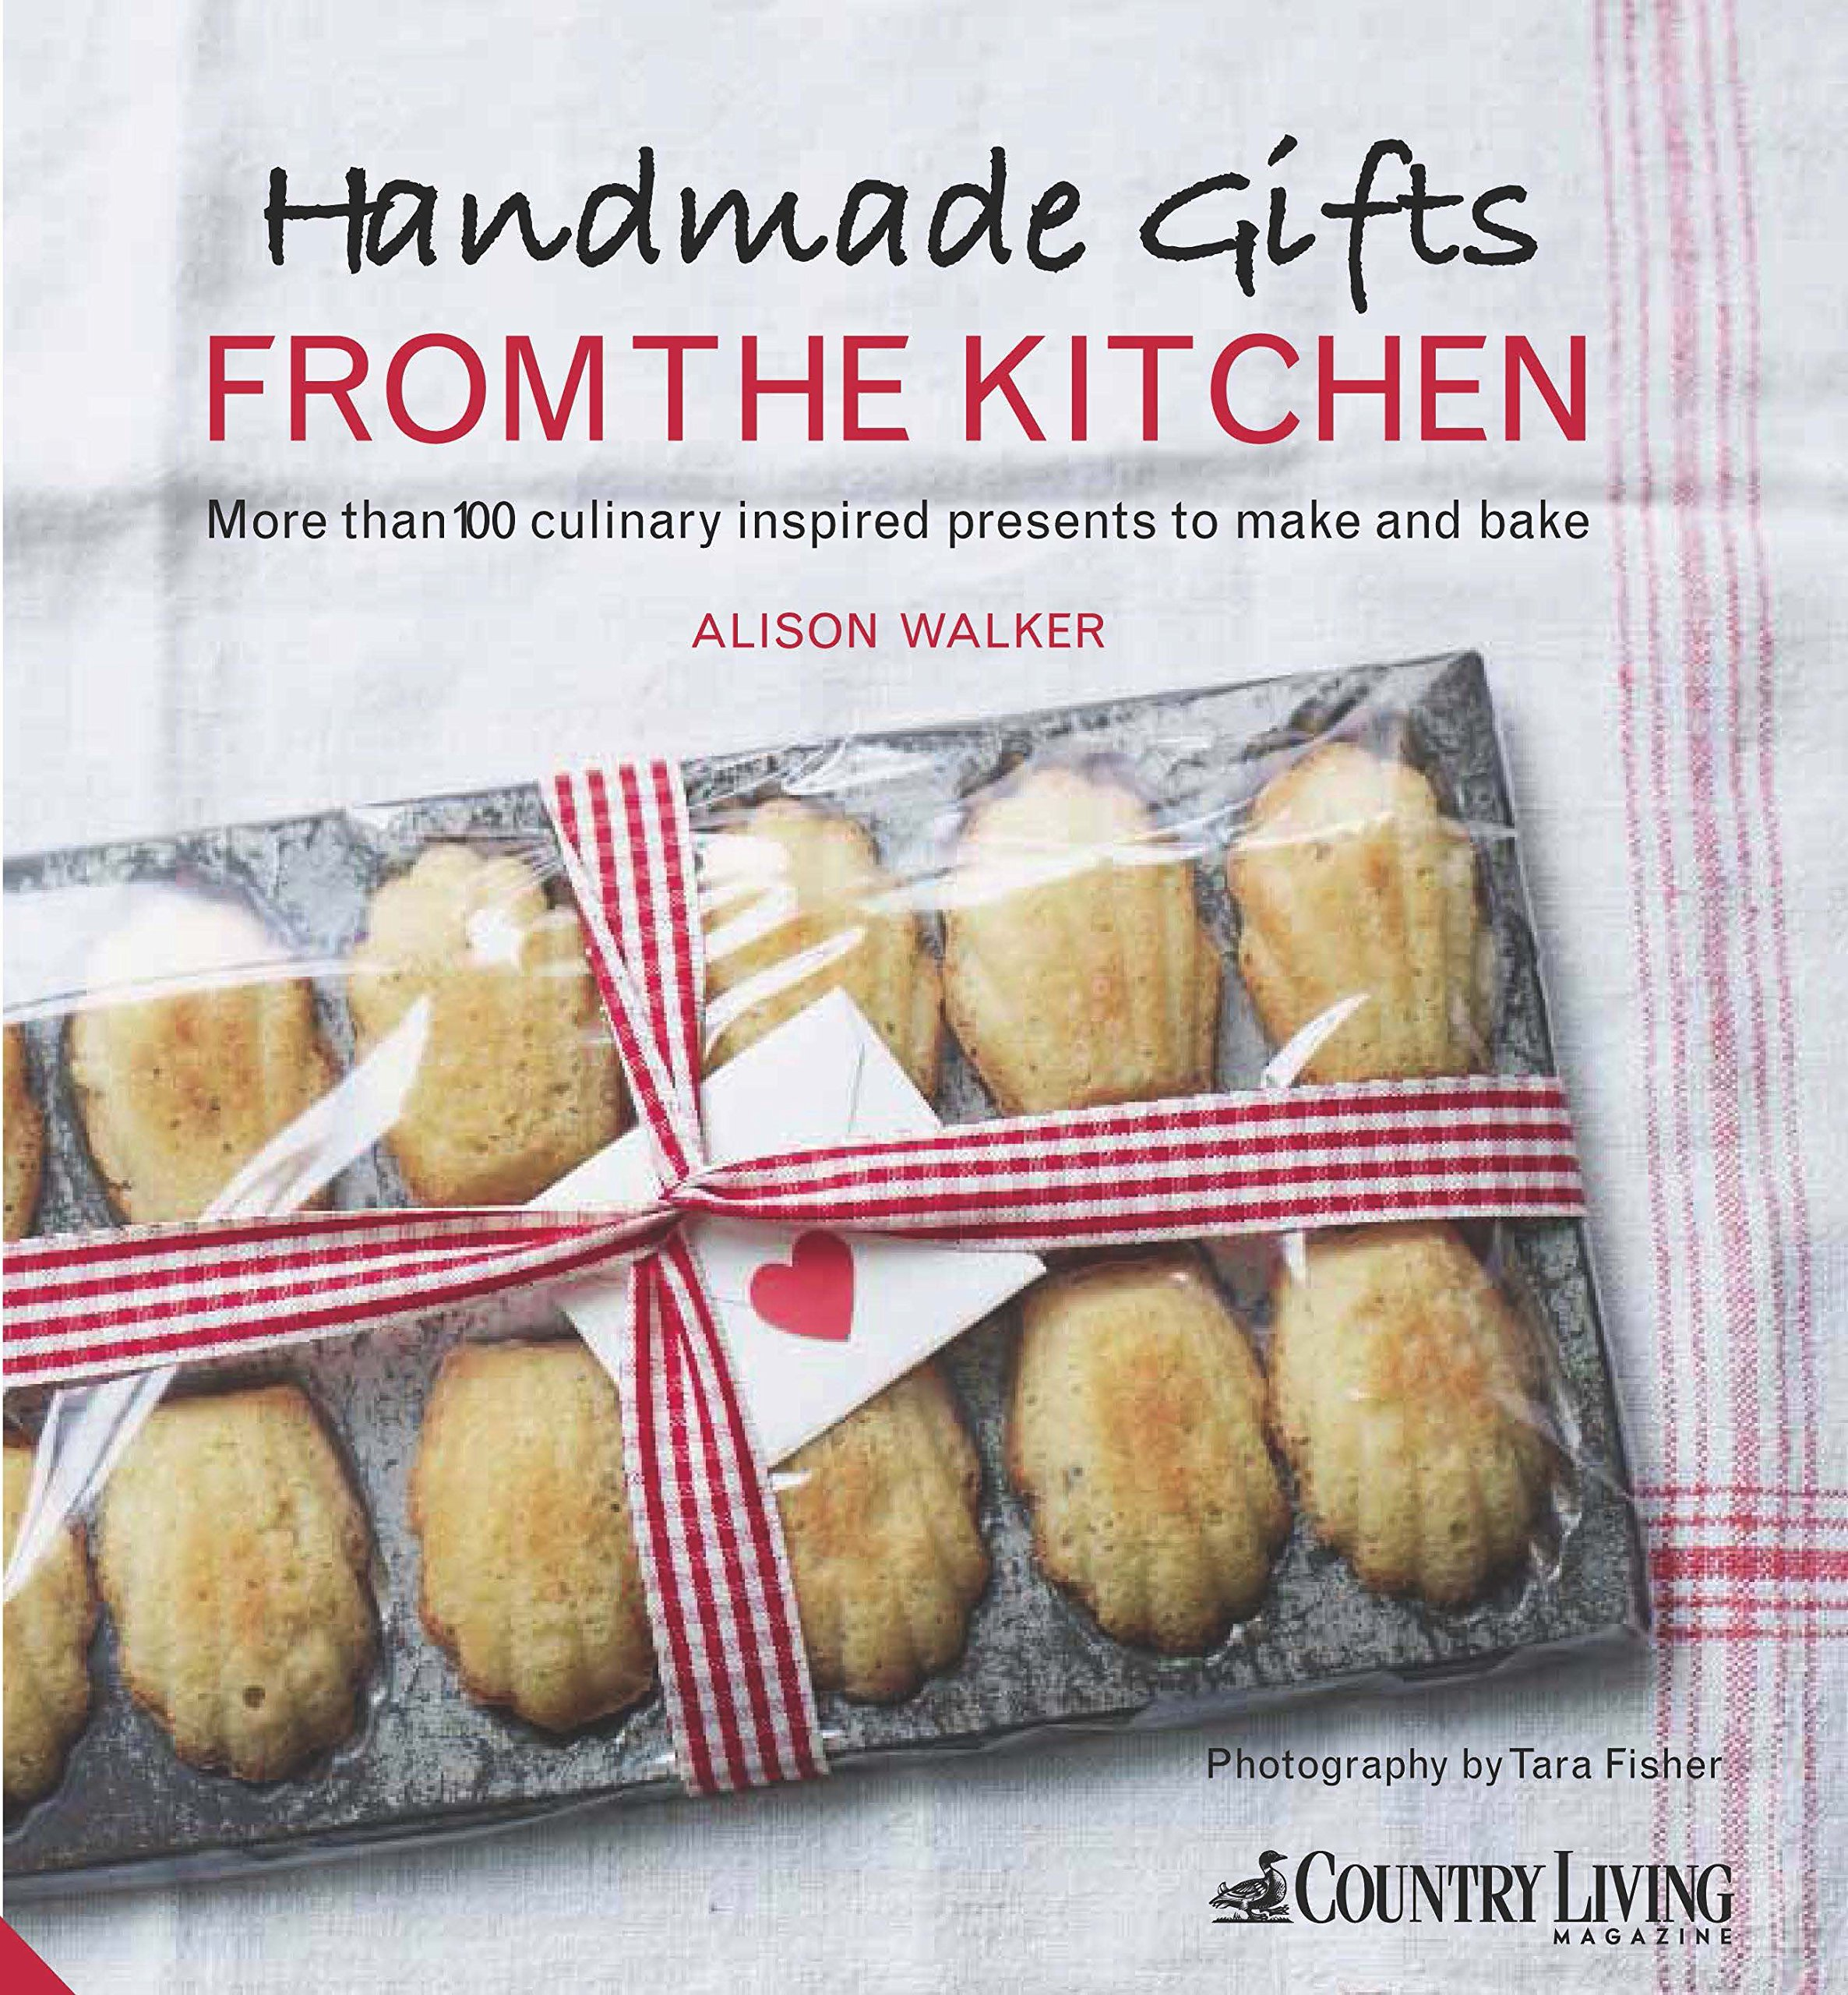 Handmade Gifts From The Kitchen More Than 100 Culinary Inspired Special Gift Cocoa Jewelry Anting Elegant Love Presents To Make And Bake Alison Walker 9781909342019 Books